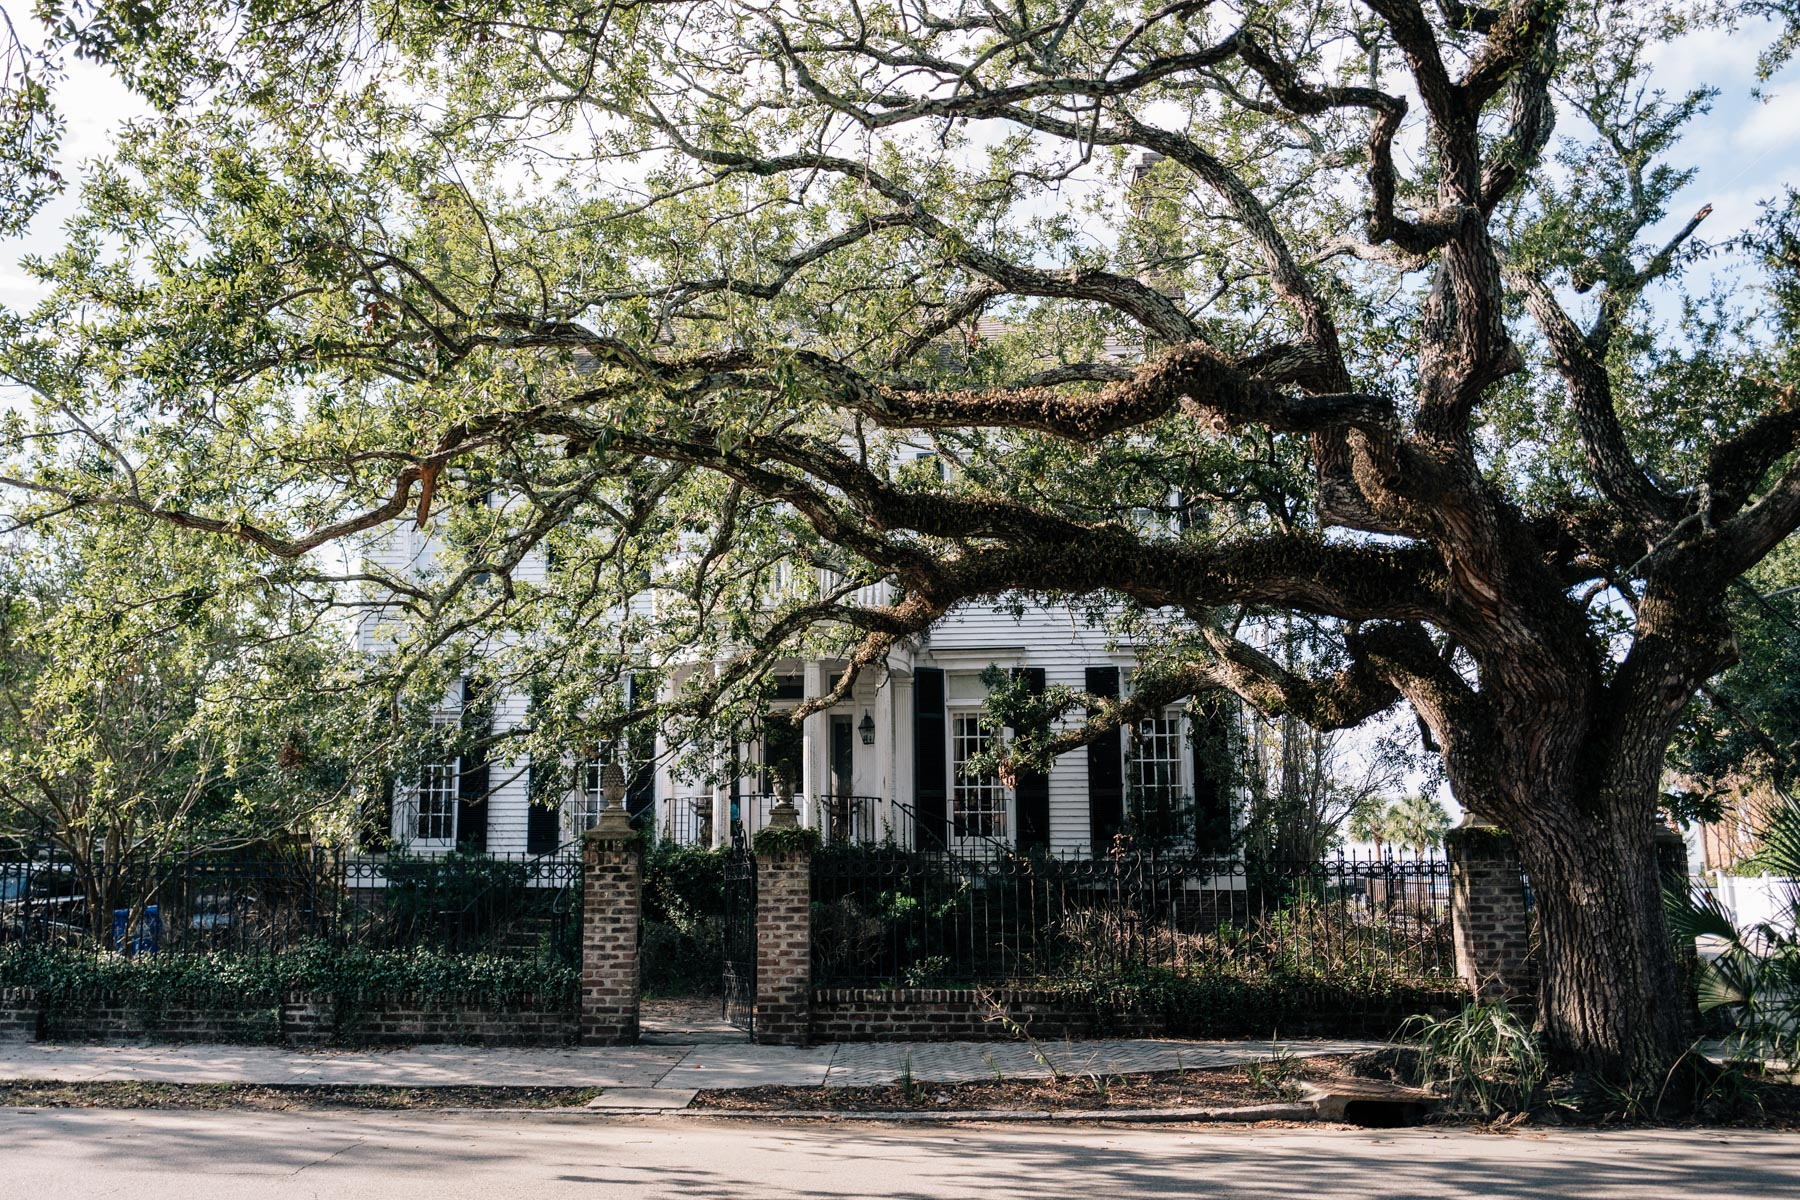 The architecture of Charleston South Carolina's historic homes in the South of Broad neighborhood is worth a visit